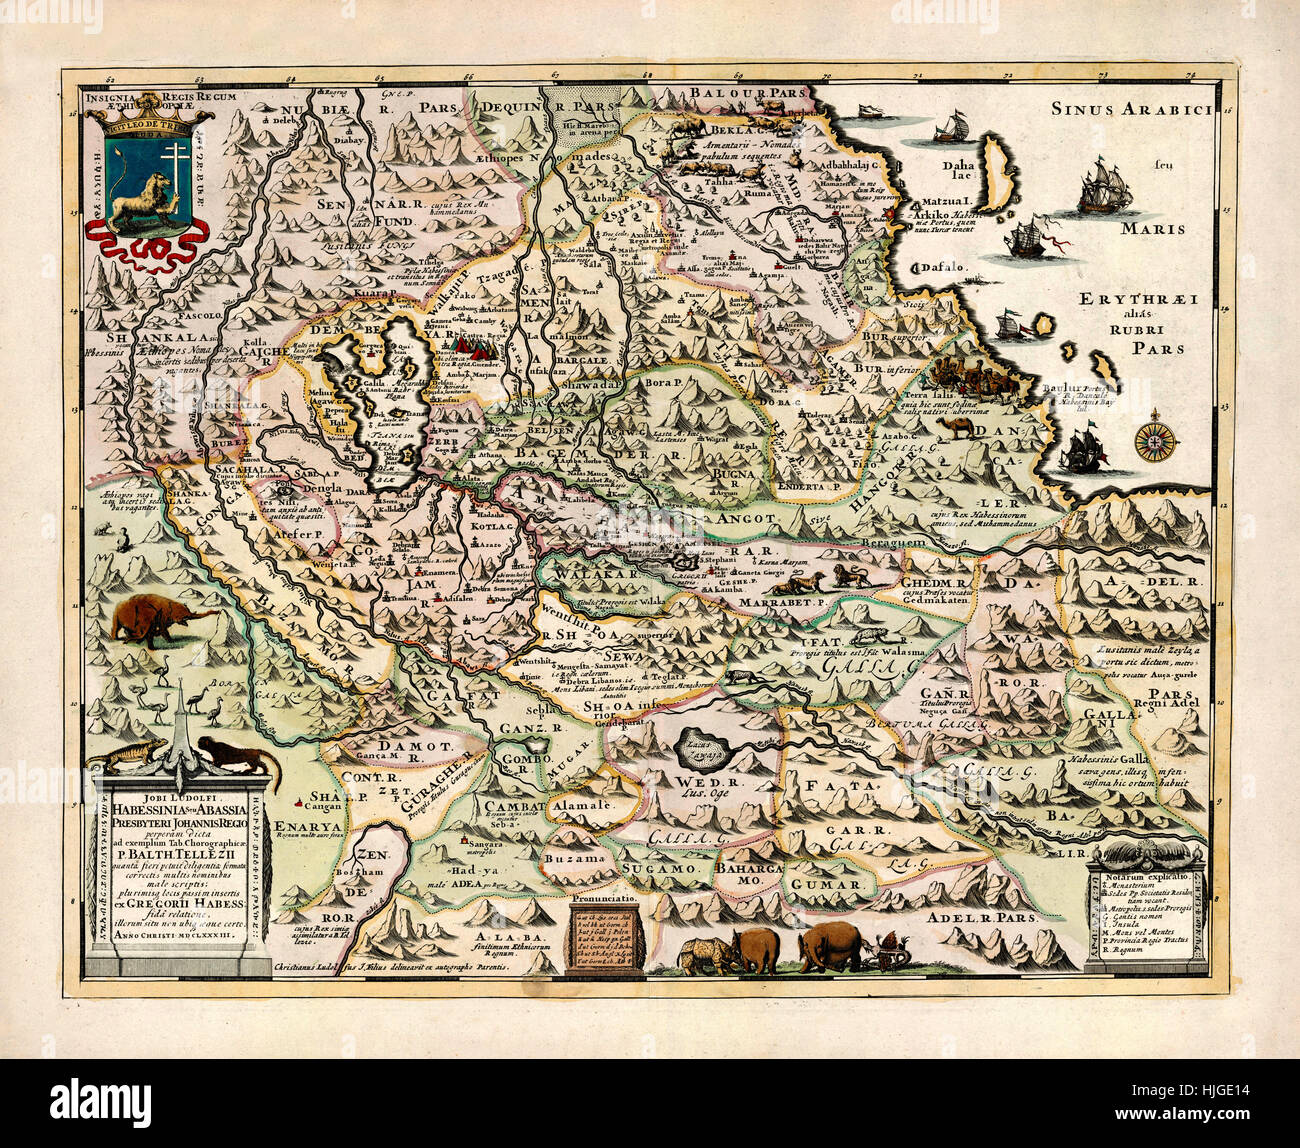 Old Map Of Ethiopia Stock Photos & Old Map Of Ethiopia Stock Images ...